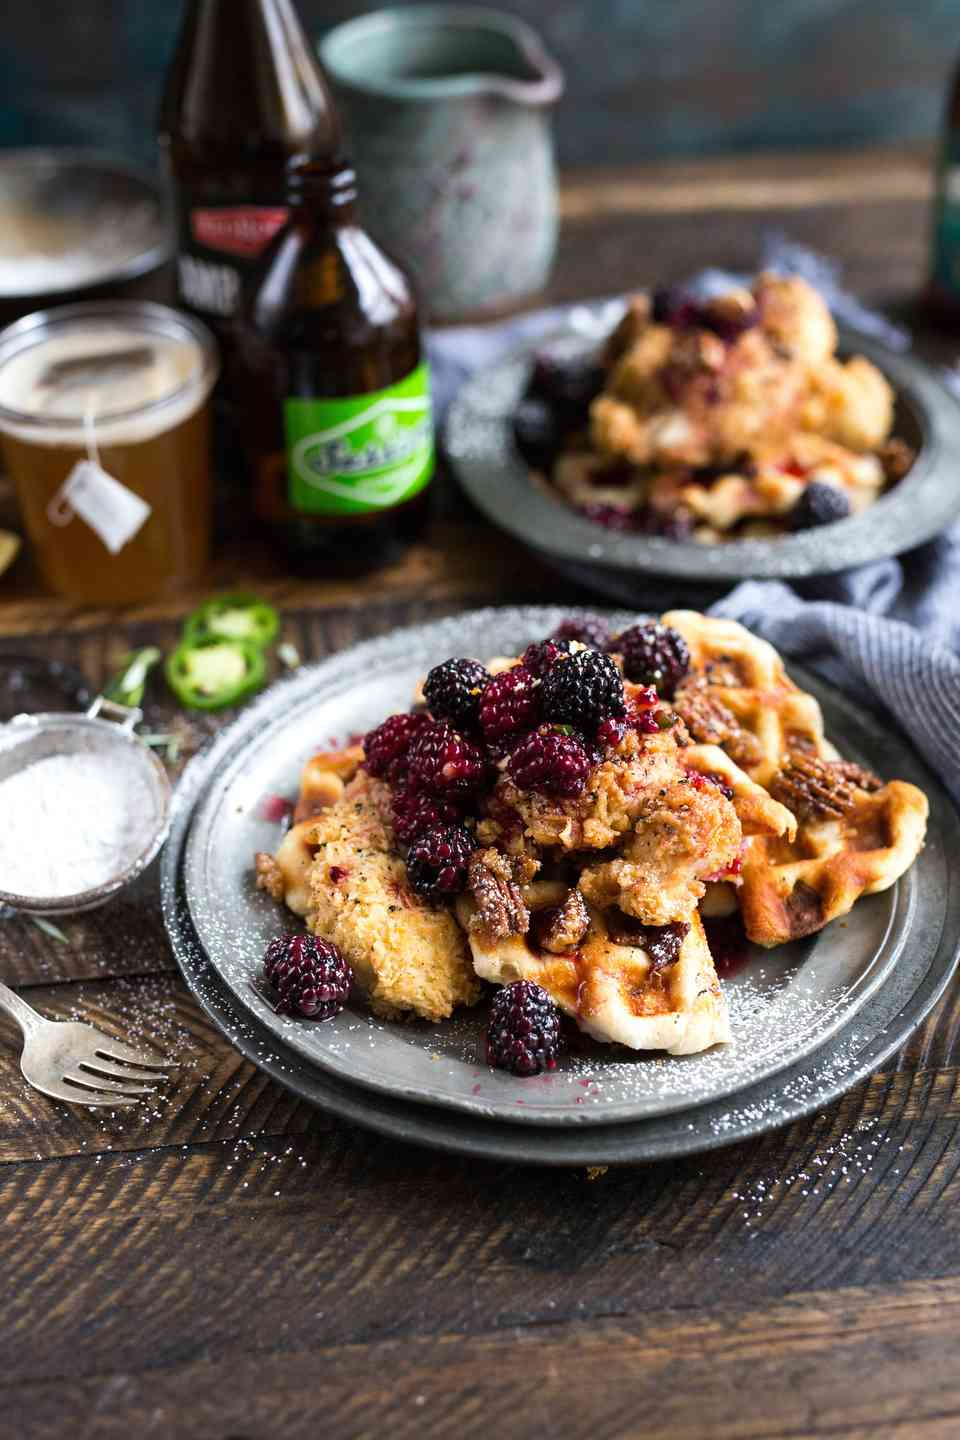 Chicken & Waffles with Fruit